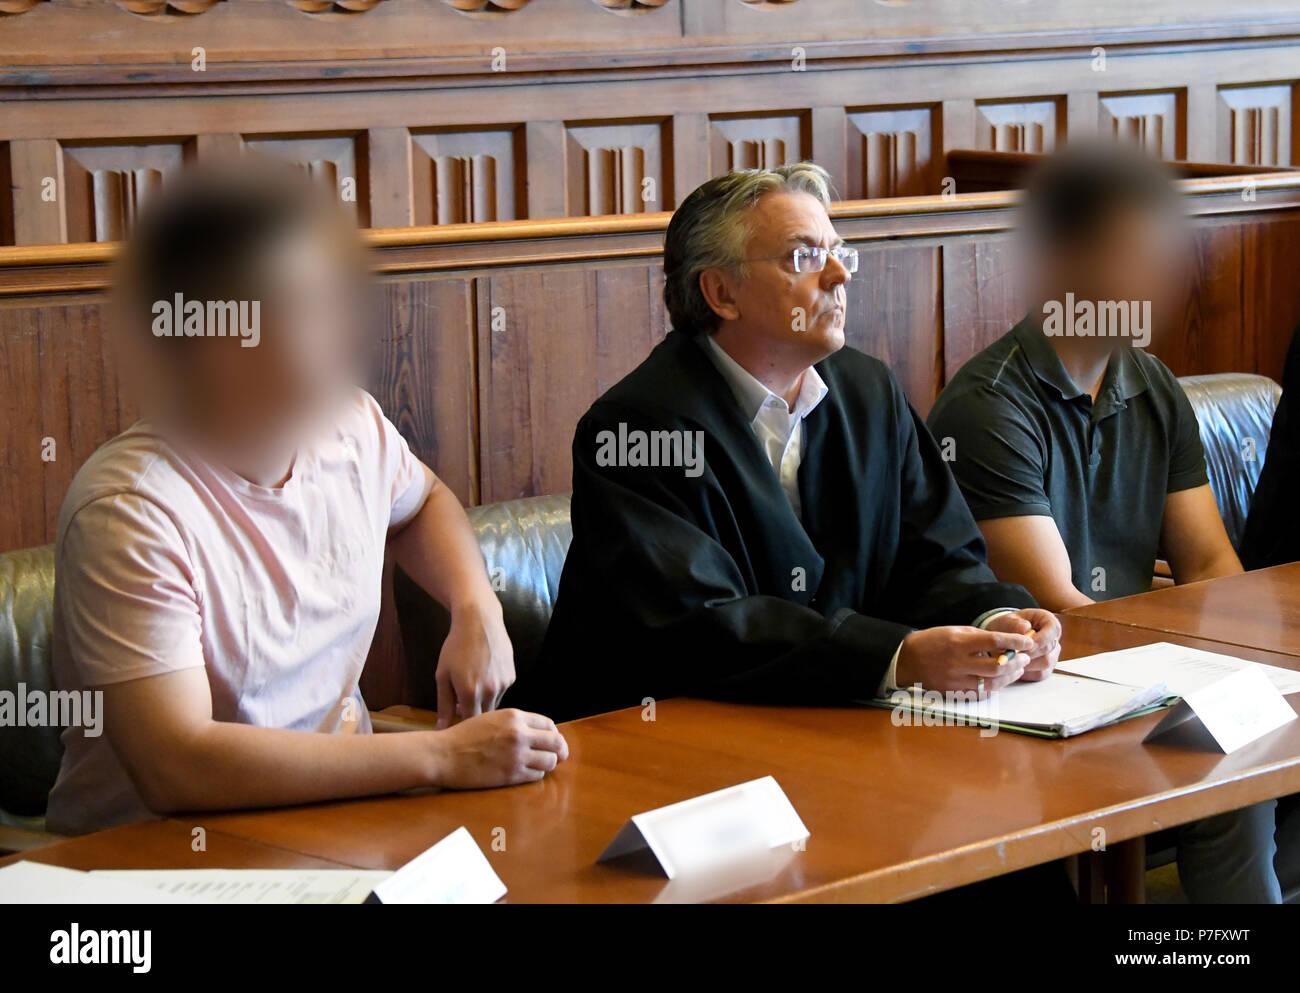 Flensburg, Germany. 06th July, 2018. The two defendants (L and R) indicted for murder standing in the dock with their lawyer Martin Unger. The district court is pronouncing their verdict in the murder trial against the two 20-year-olds, who woke up a coeval in the night before Easter Sunday 2017 and stabbed him by the front door. Credit: Carsten Rehder/dpa/Alamy Live News - Stock Image